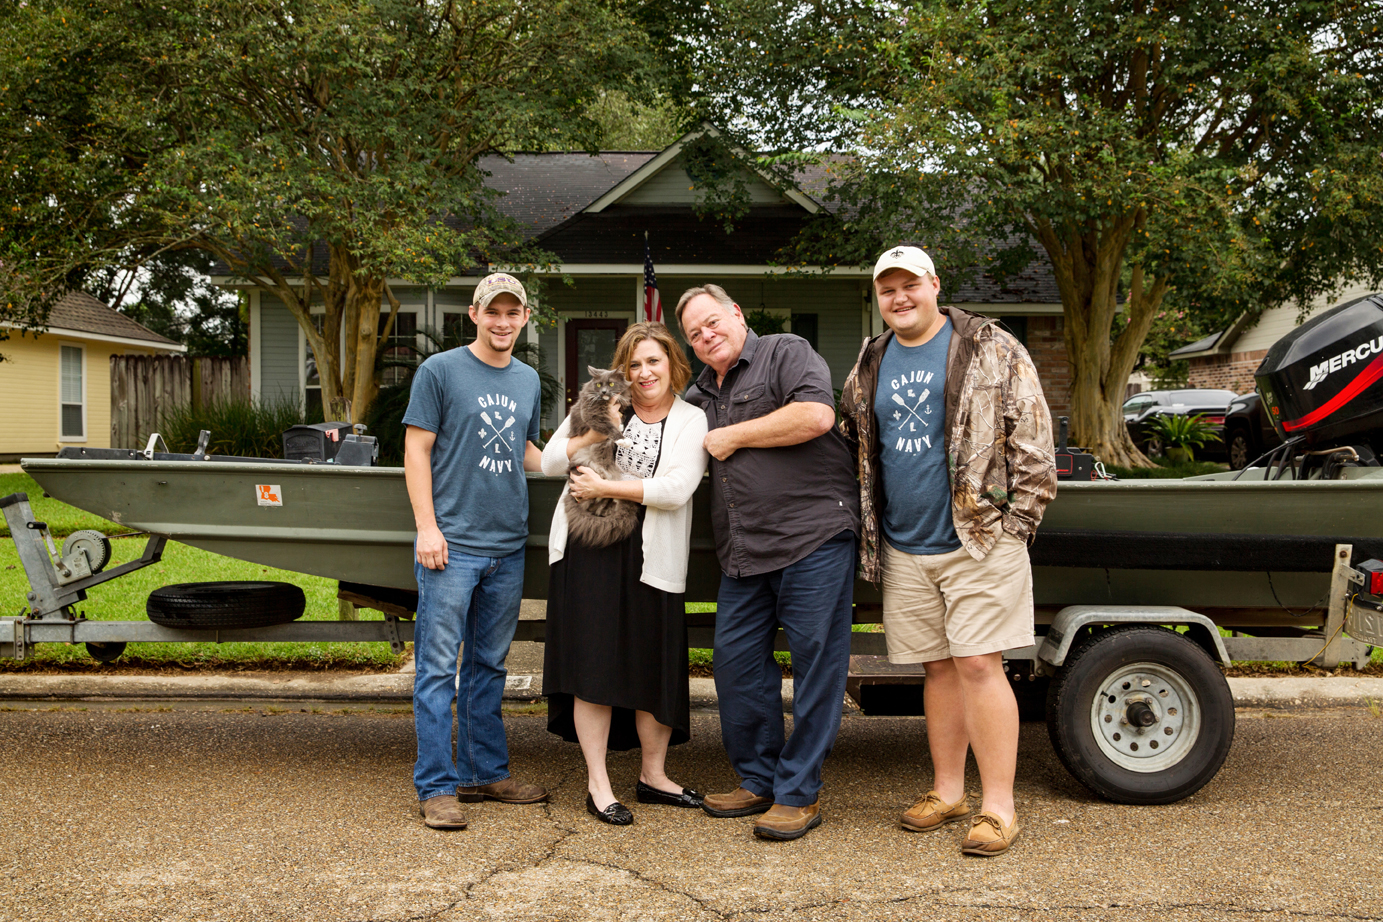 Marc Curry, Connie McLeod, Fancy Nancy, Steve Davison and Garrett Tillman rode this boat away from McLeod's home in the Millerville Road area, one of the hardest-hit parts of Baton Rouge. Photo by David Morris.